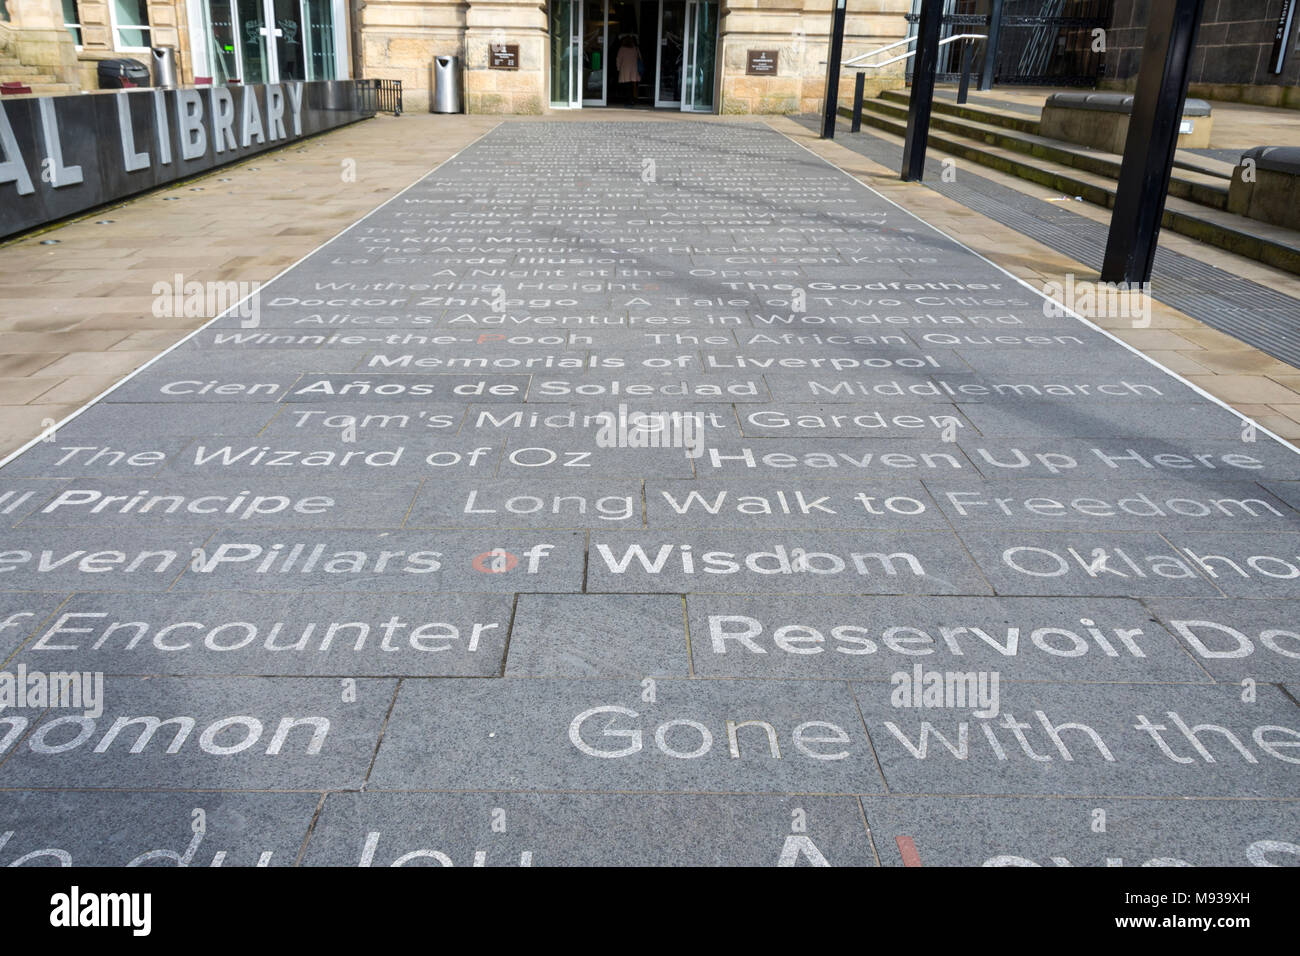 Book titles set into paving stones at the entrance of the Central Library.  St. George's Quarter, Liverpool, England, UK - Stock Image